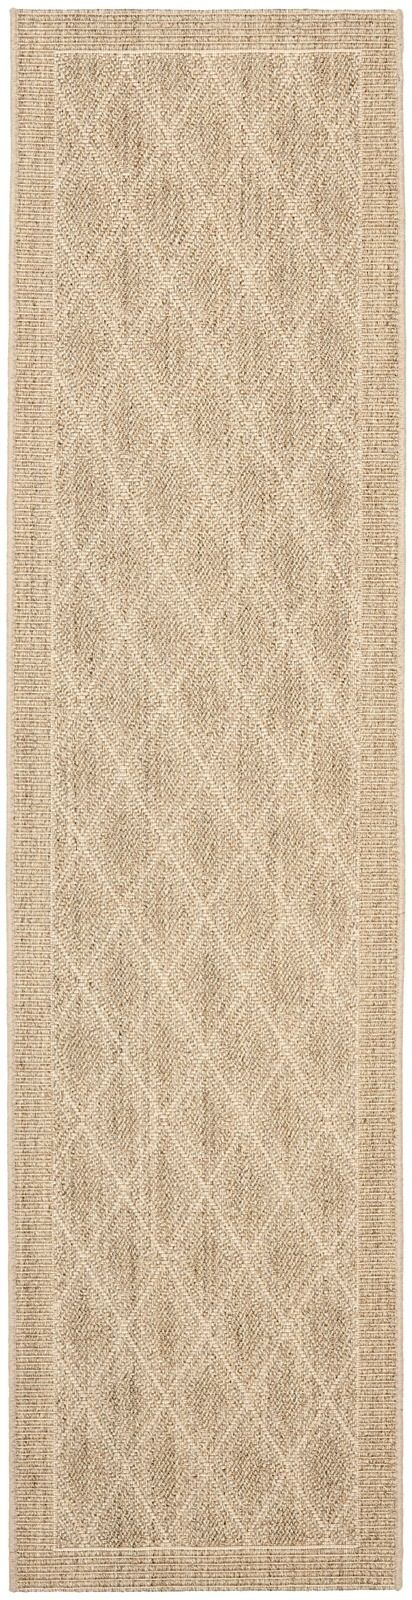 safavieh palm beach contemporary area rug collection